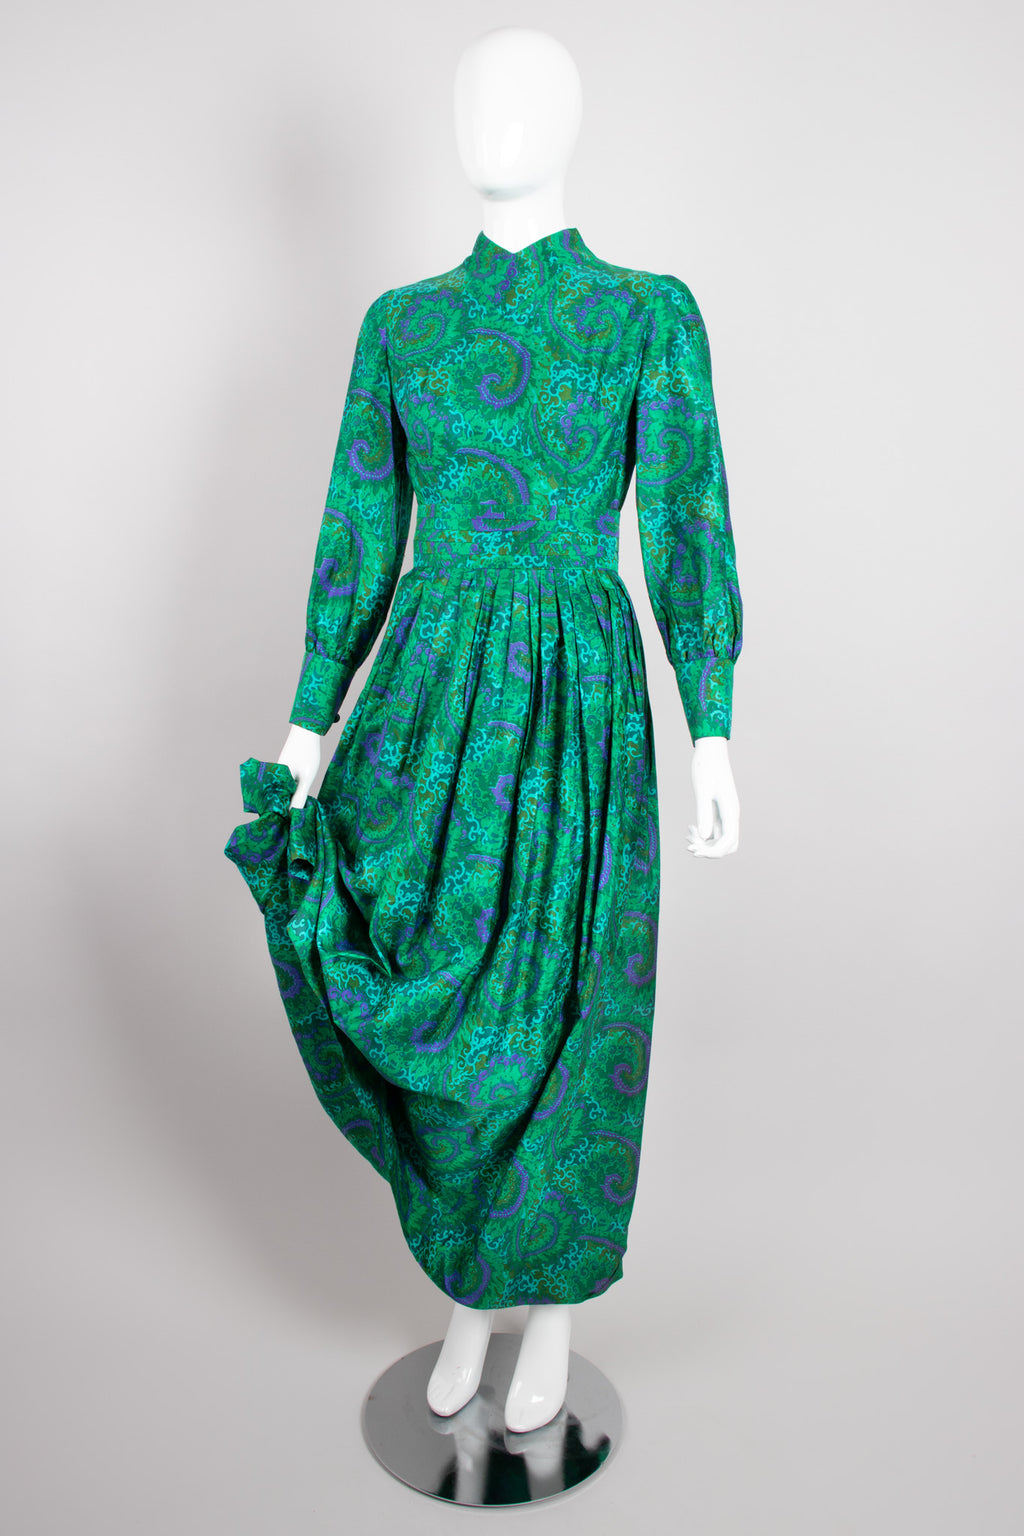 Vintage Raw Silk Swirl Flourish Print Dress